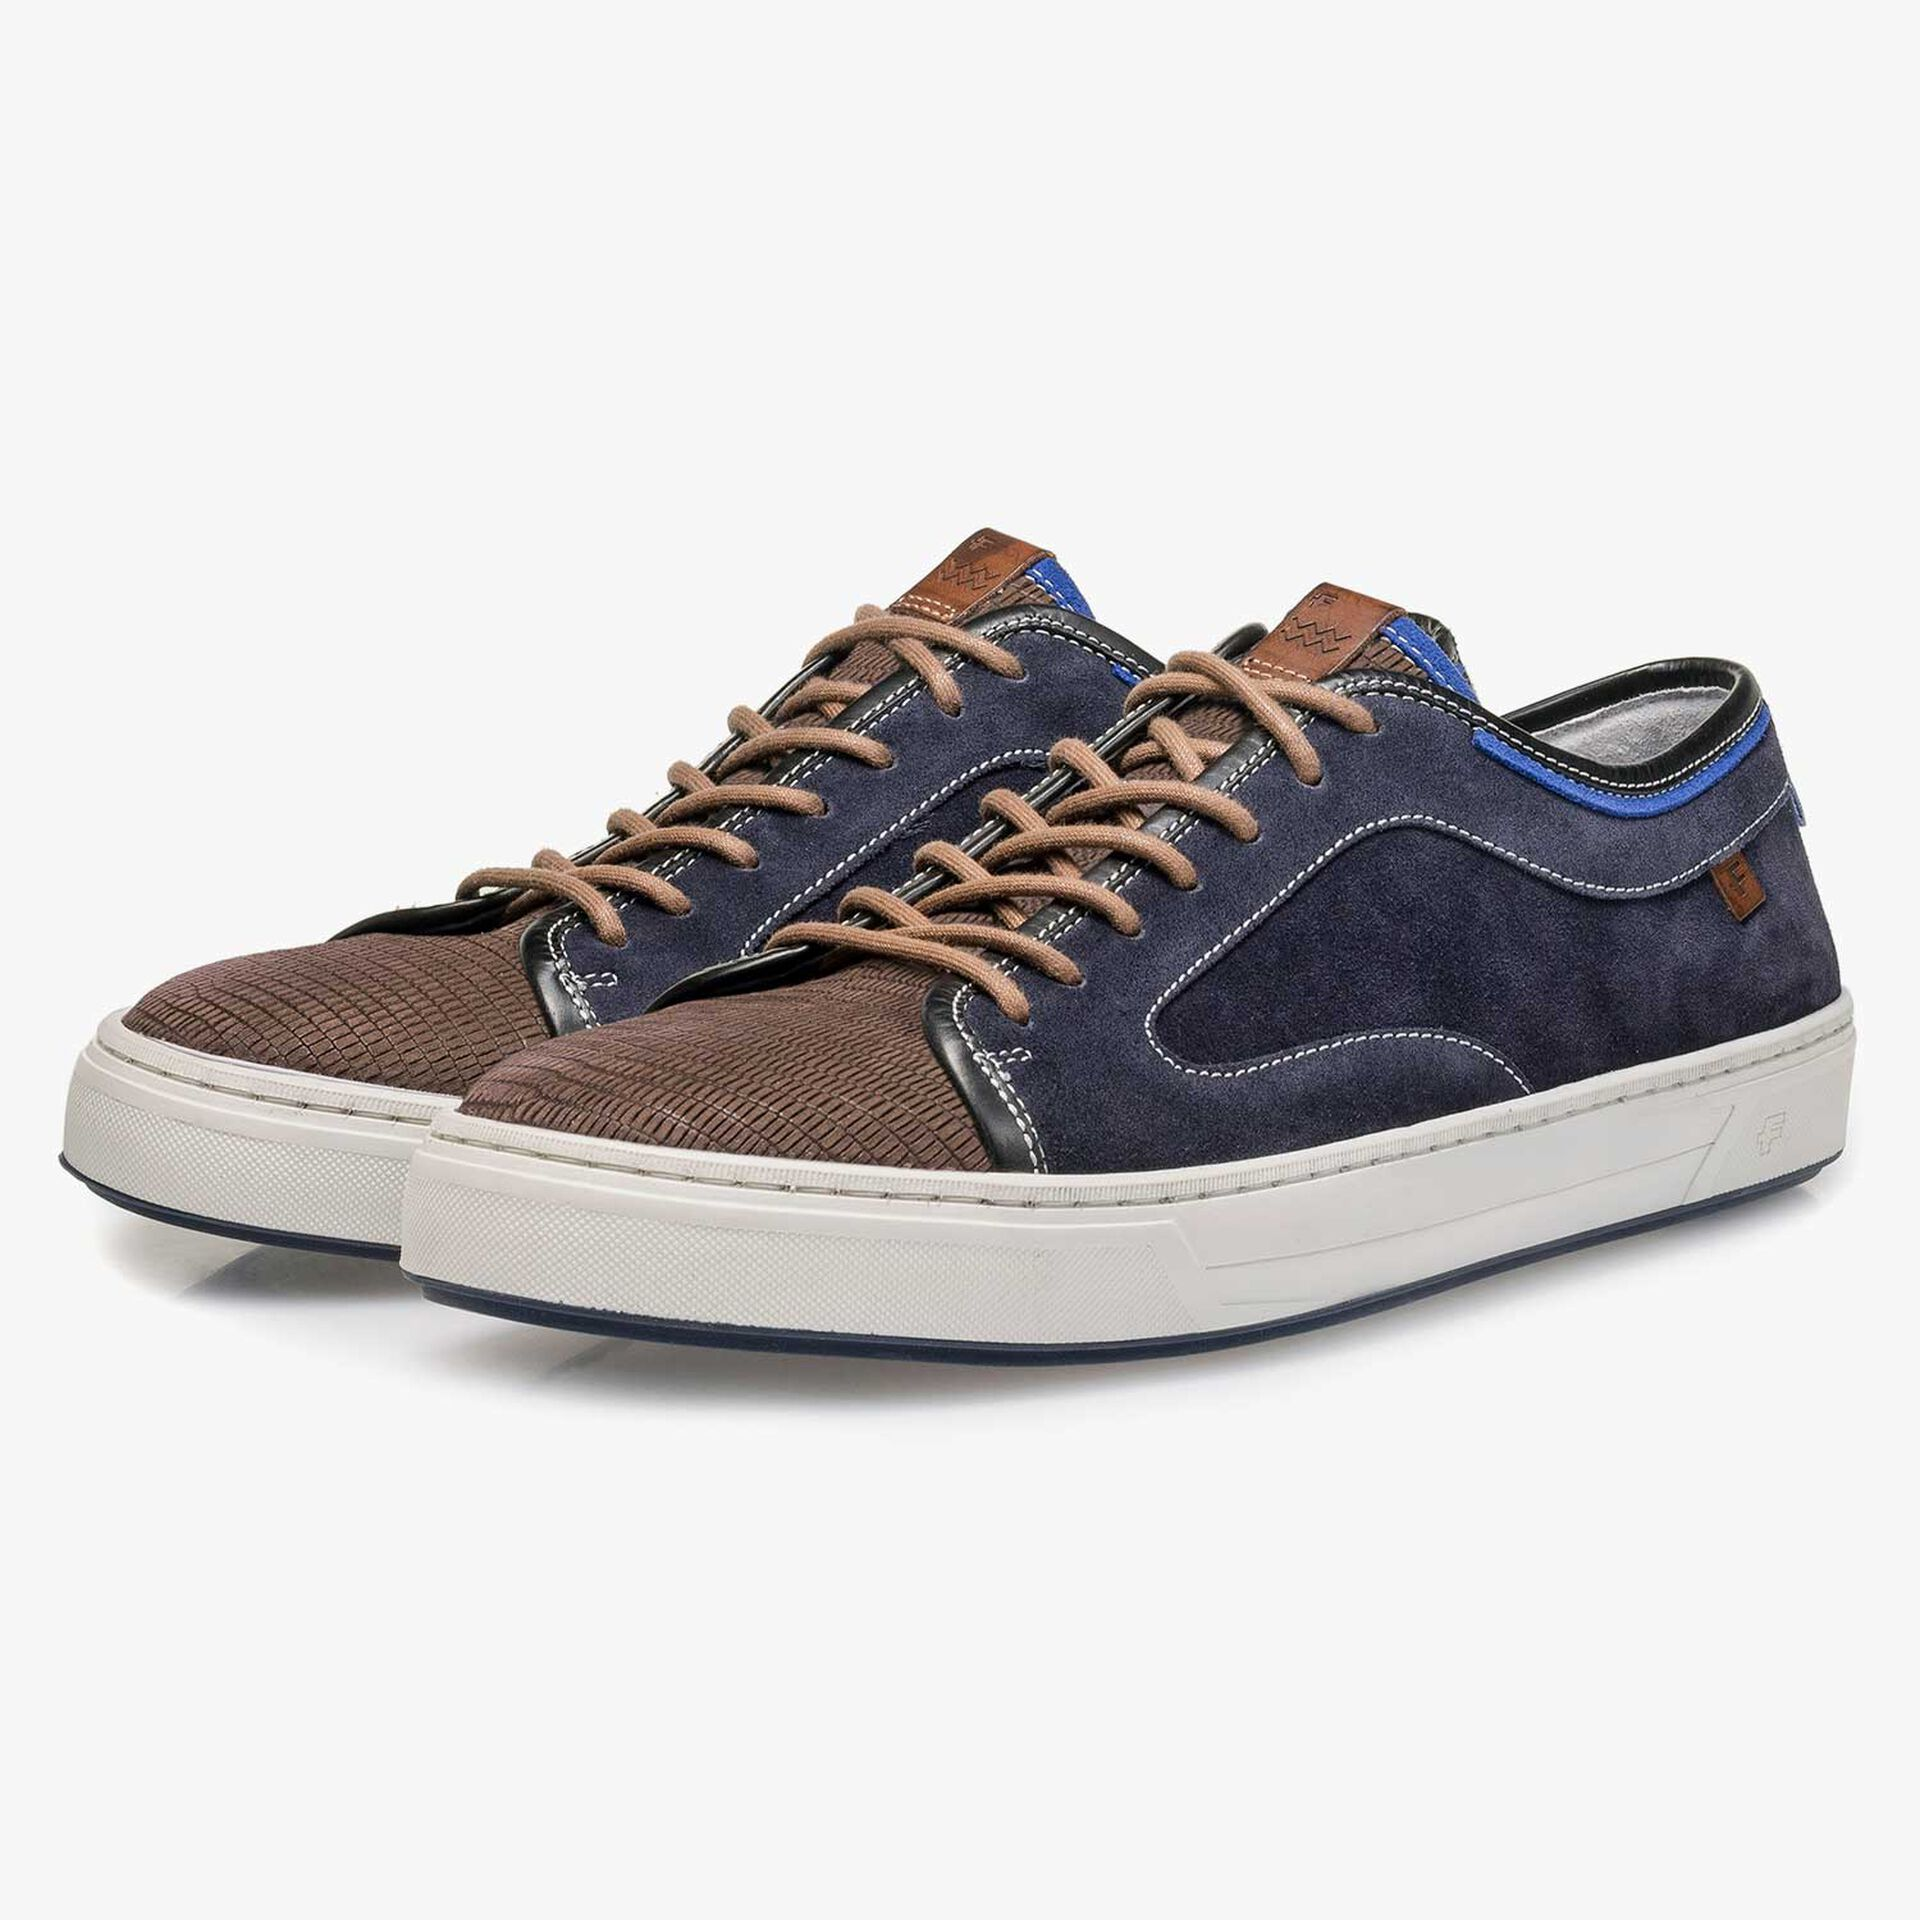 Dark grey & blue lizard print suede leather sneaker